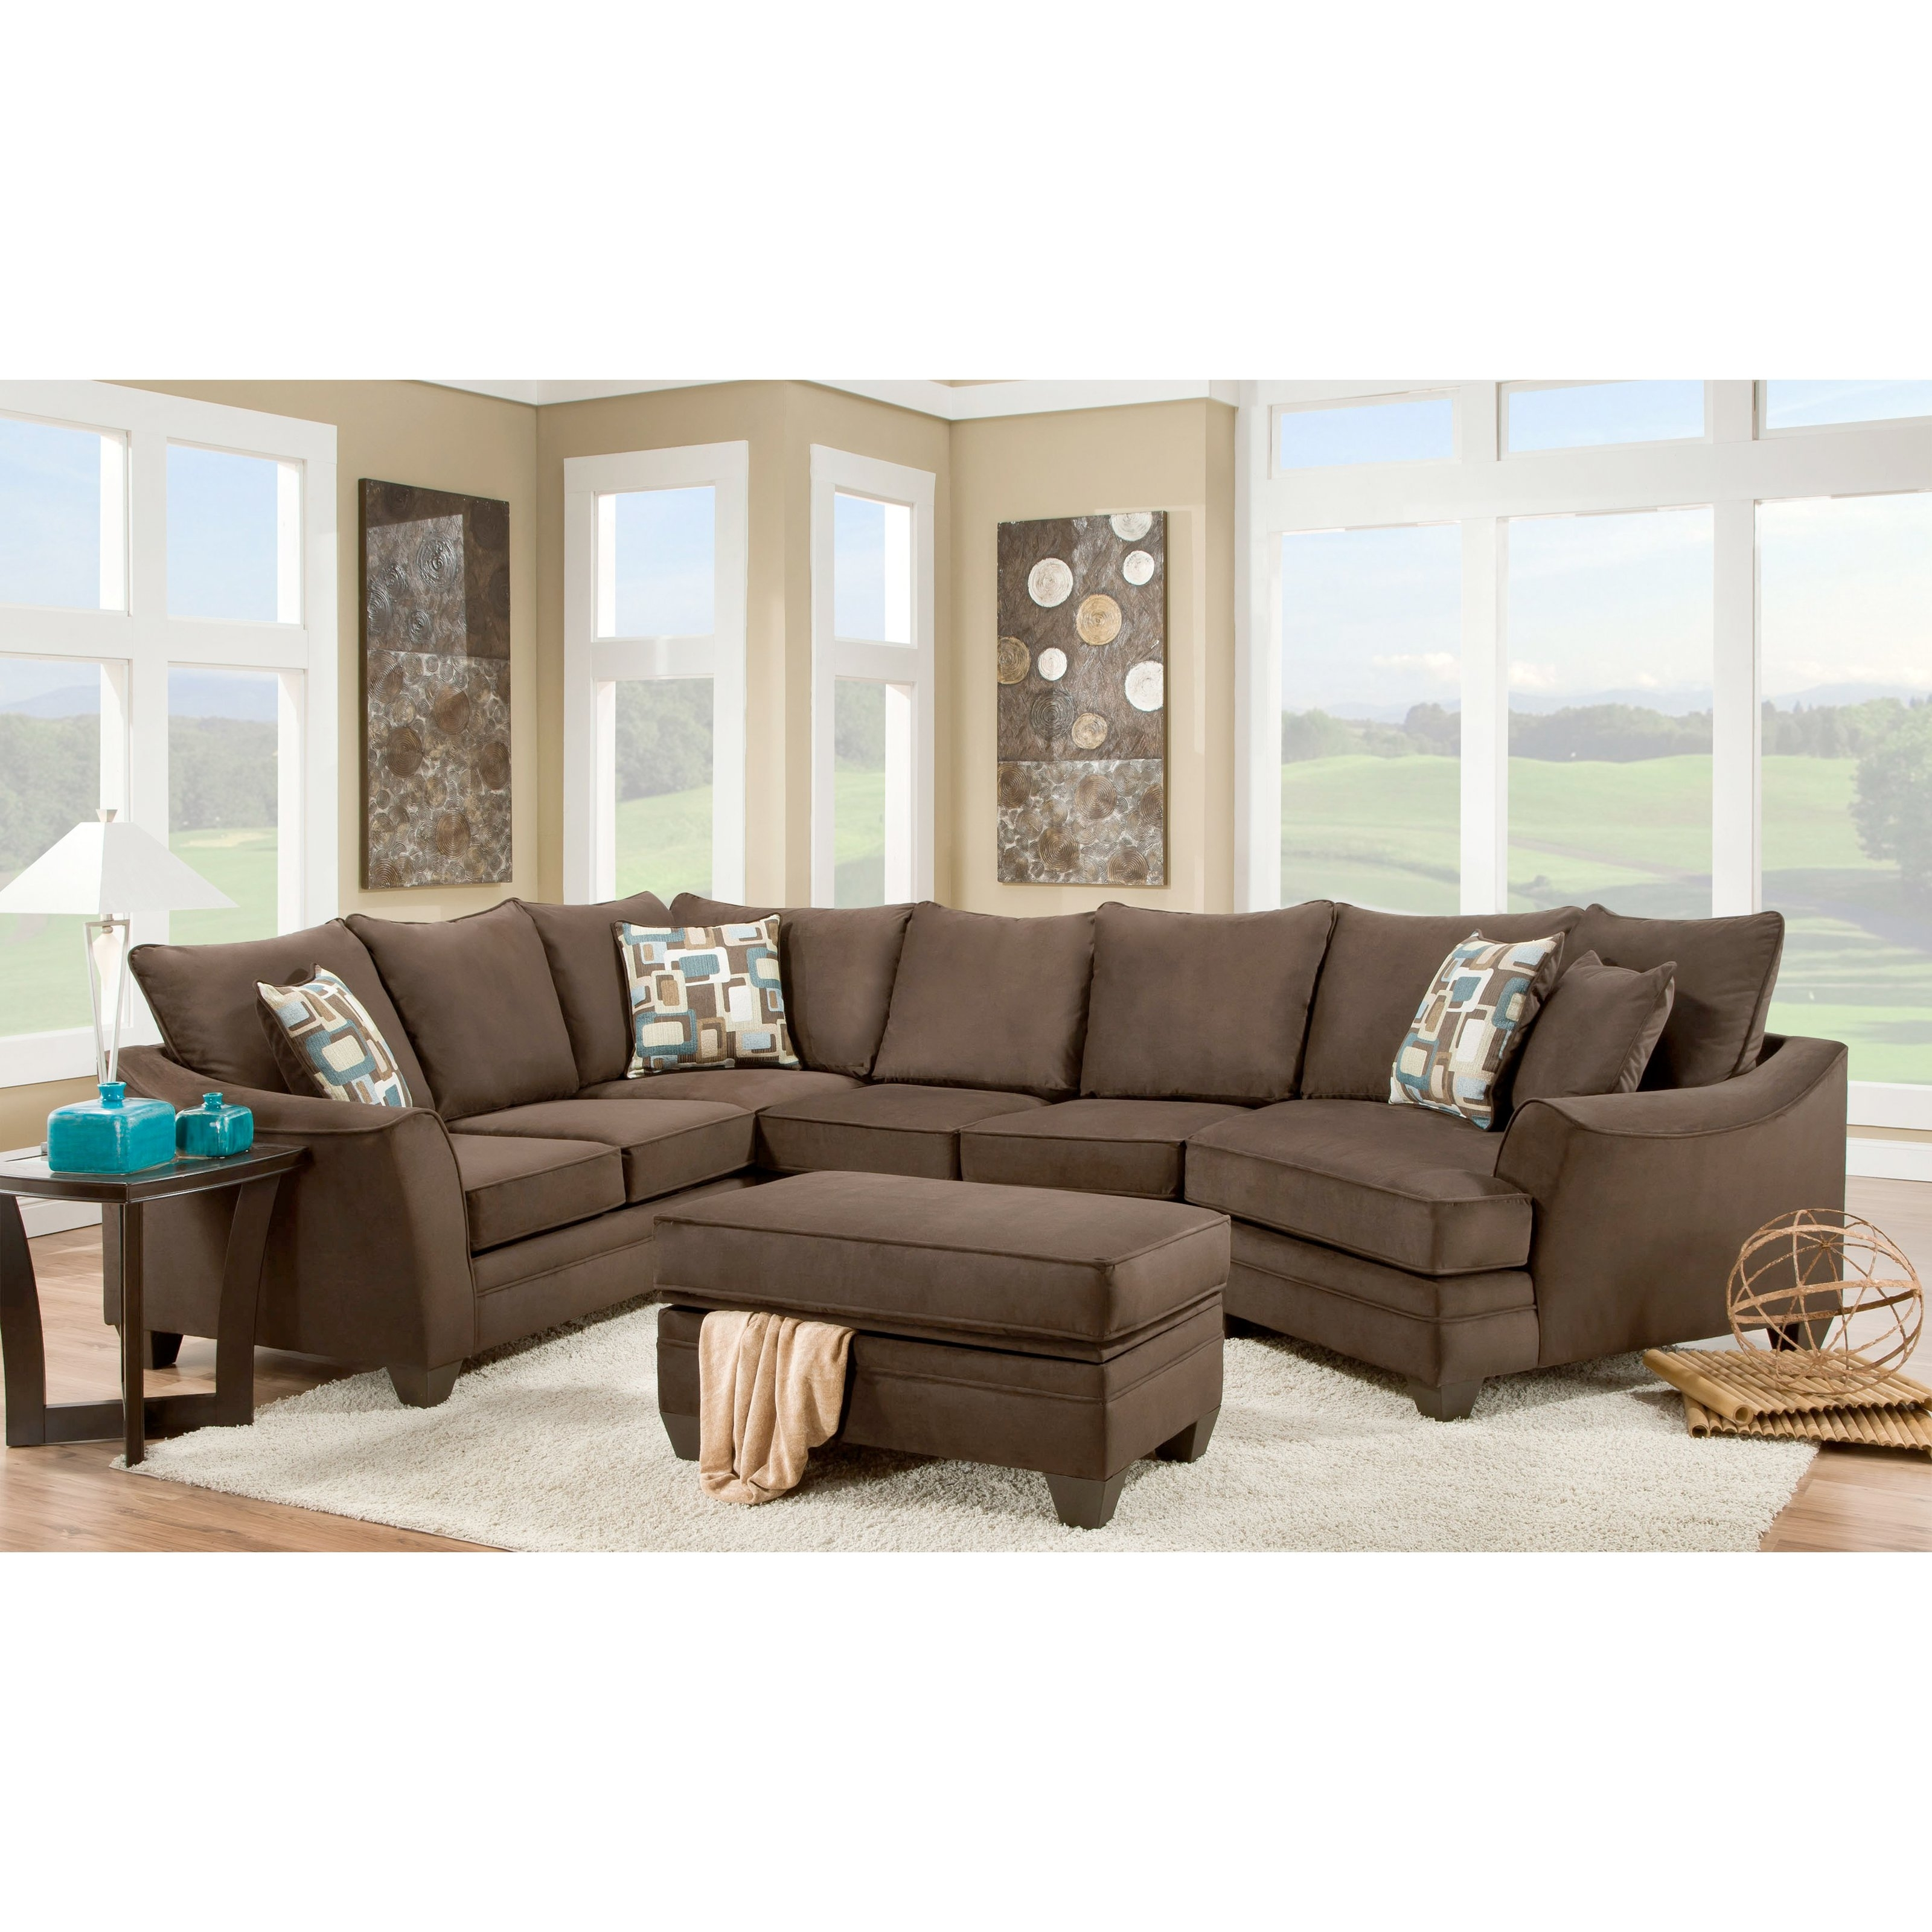 Charming Ideas Chelsea Home Furniture Bunk Beds Welland Lindsay For Oshawa Sectional Sofas (View 6 of 10)